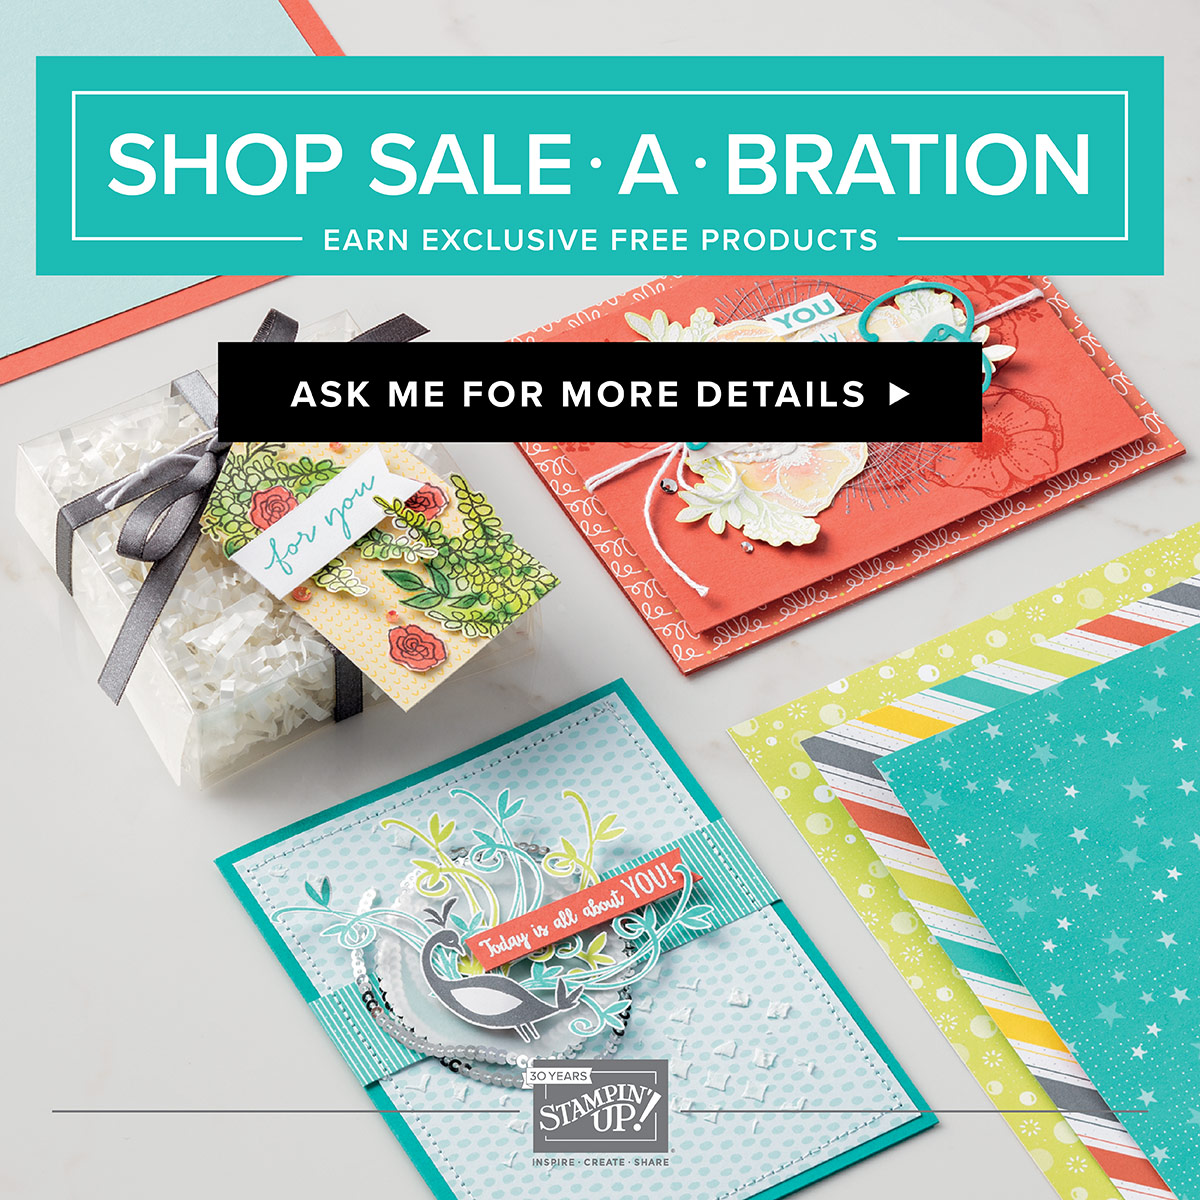 Shop-Sale-A-Bration 2018